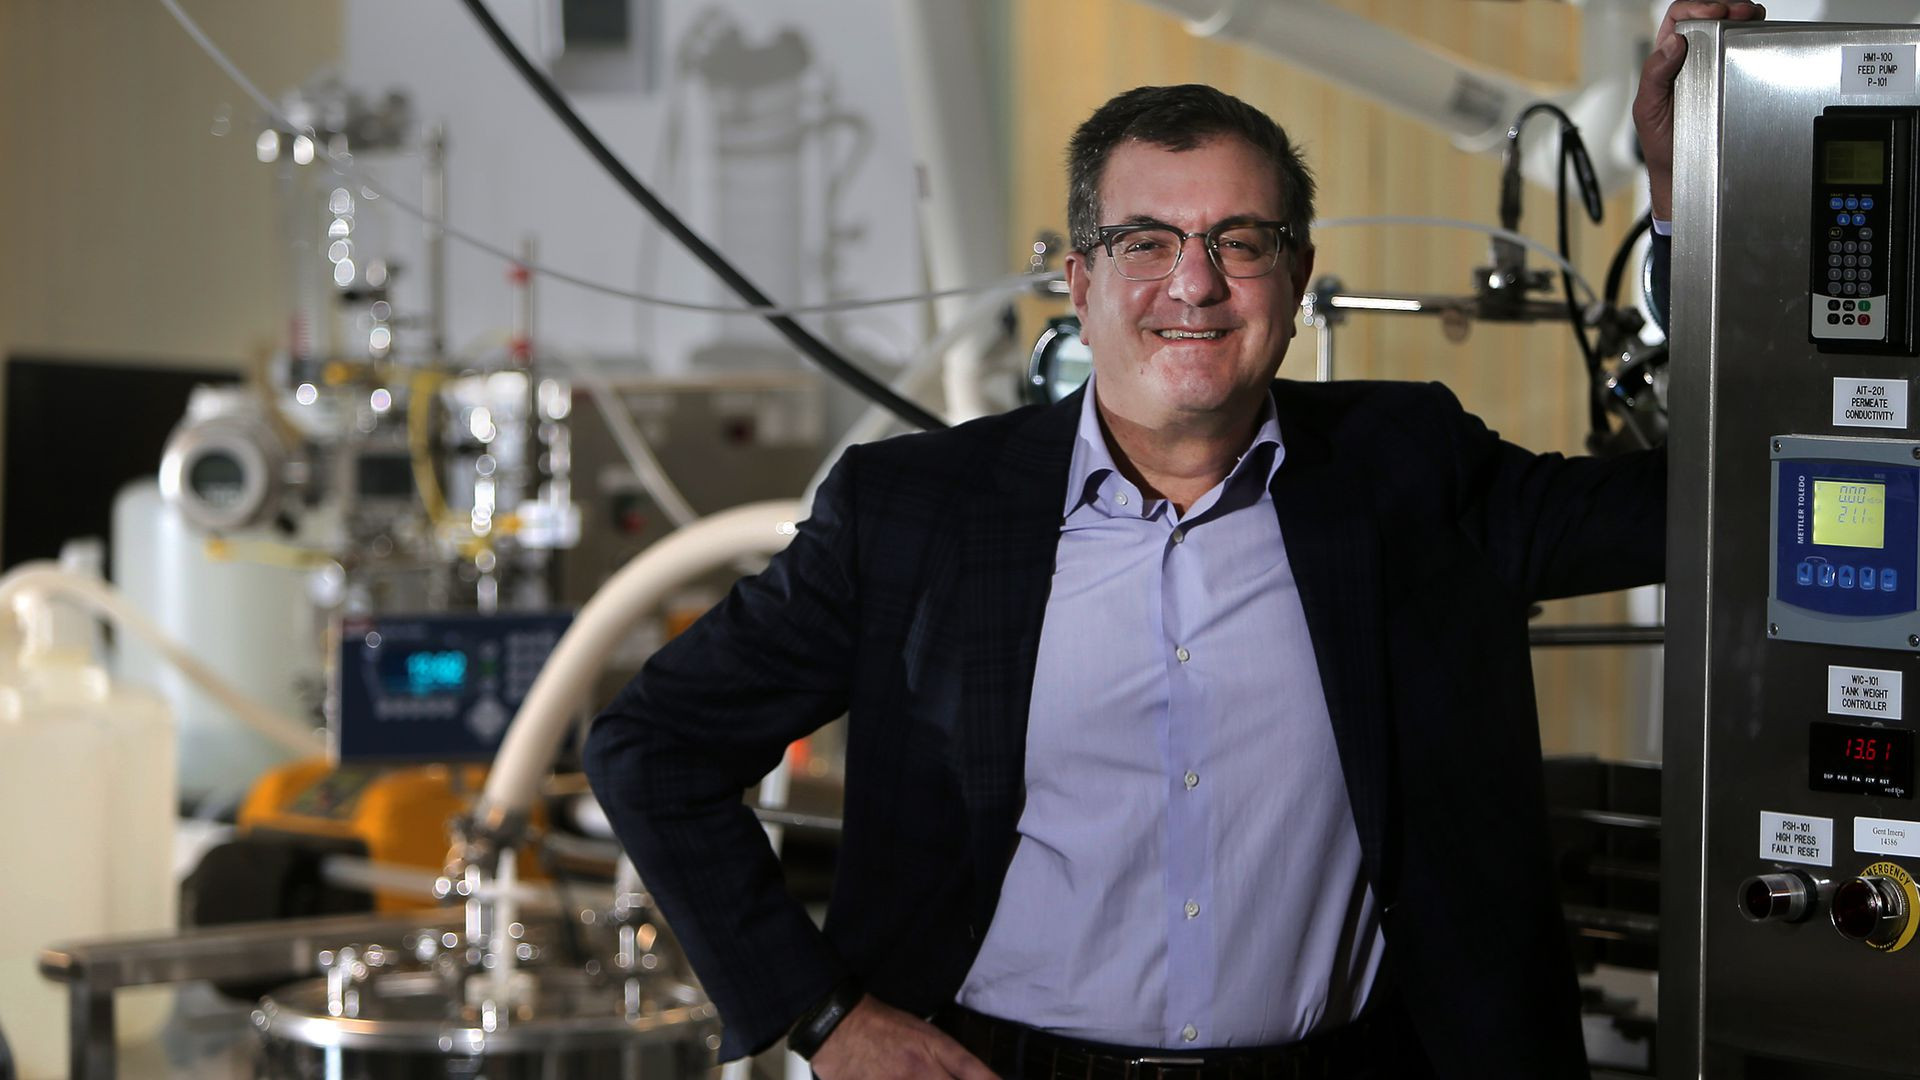 Alnylam CEO Dr. John Maraganore poses for a portrait with lab equipment behind.